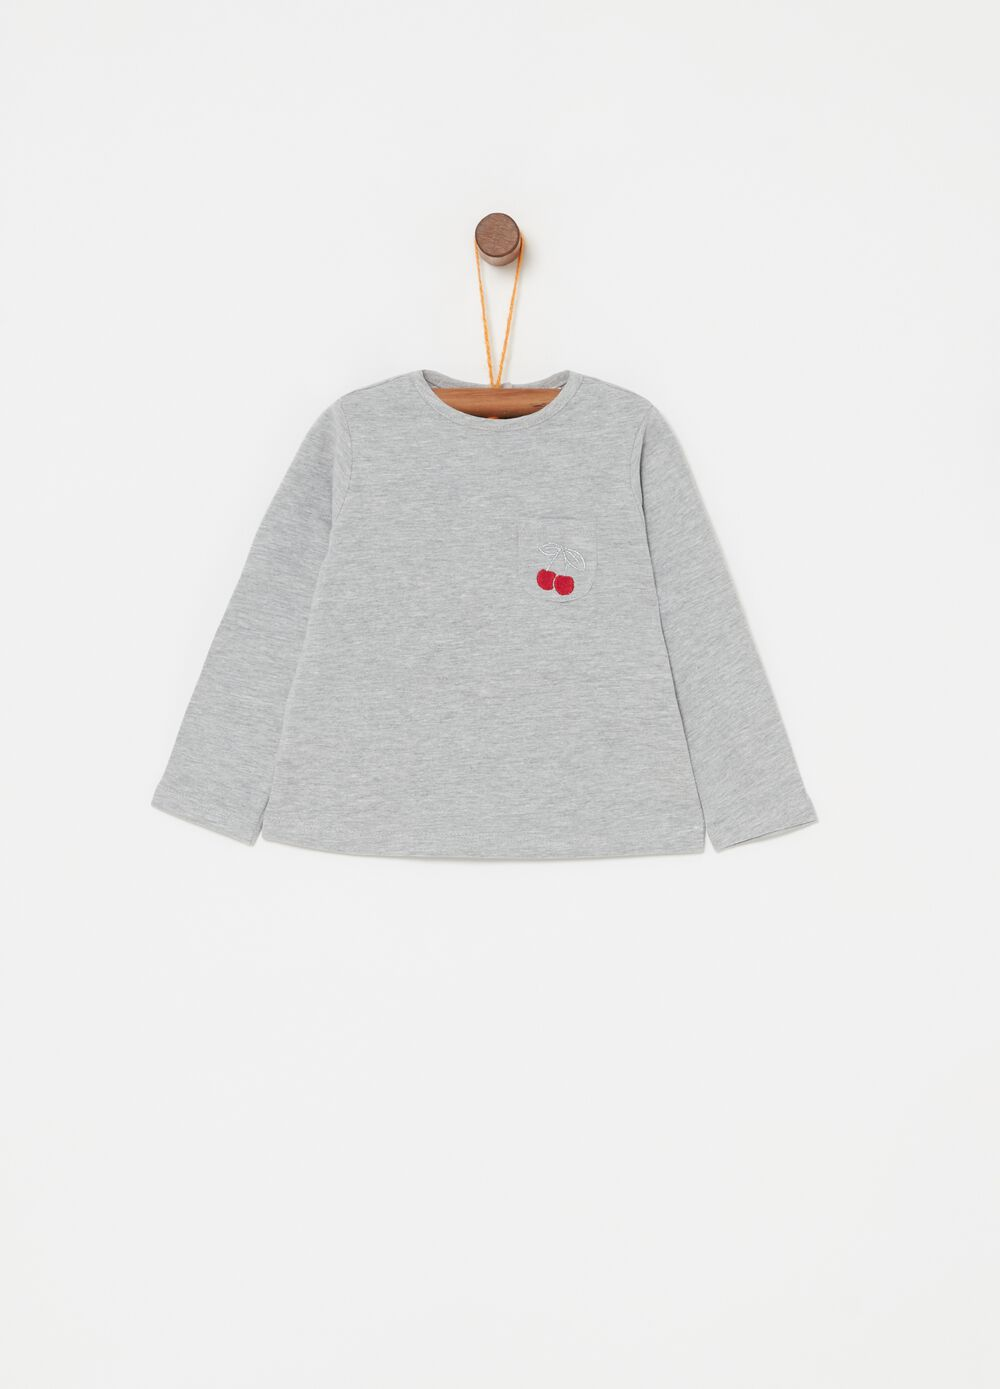 Long-sleeved T-shirt with pocket and embroidery